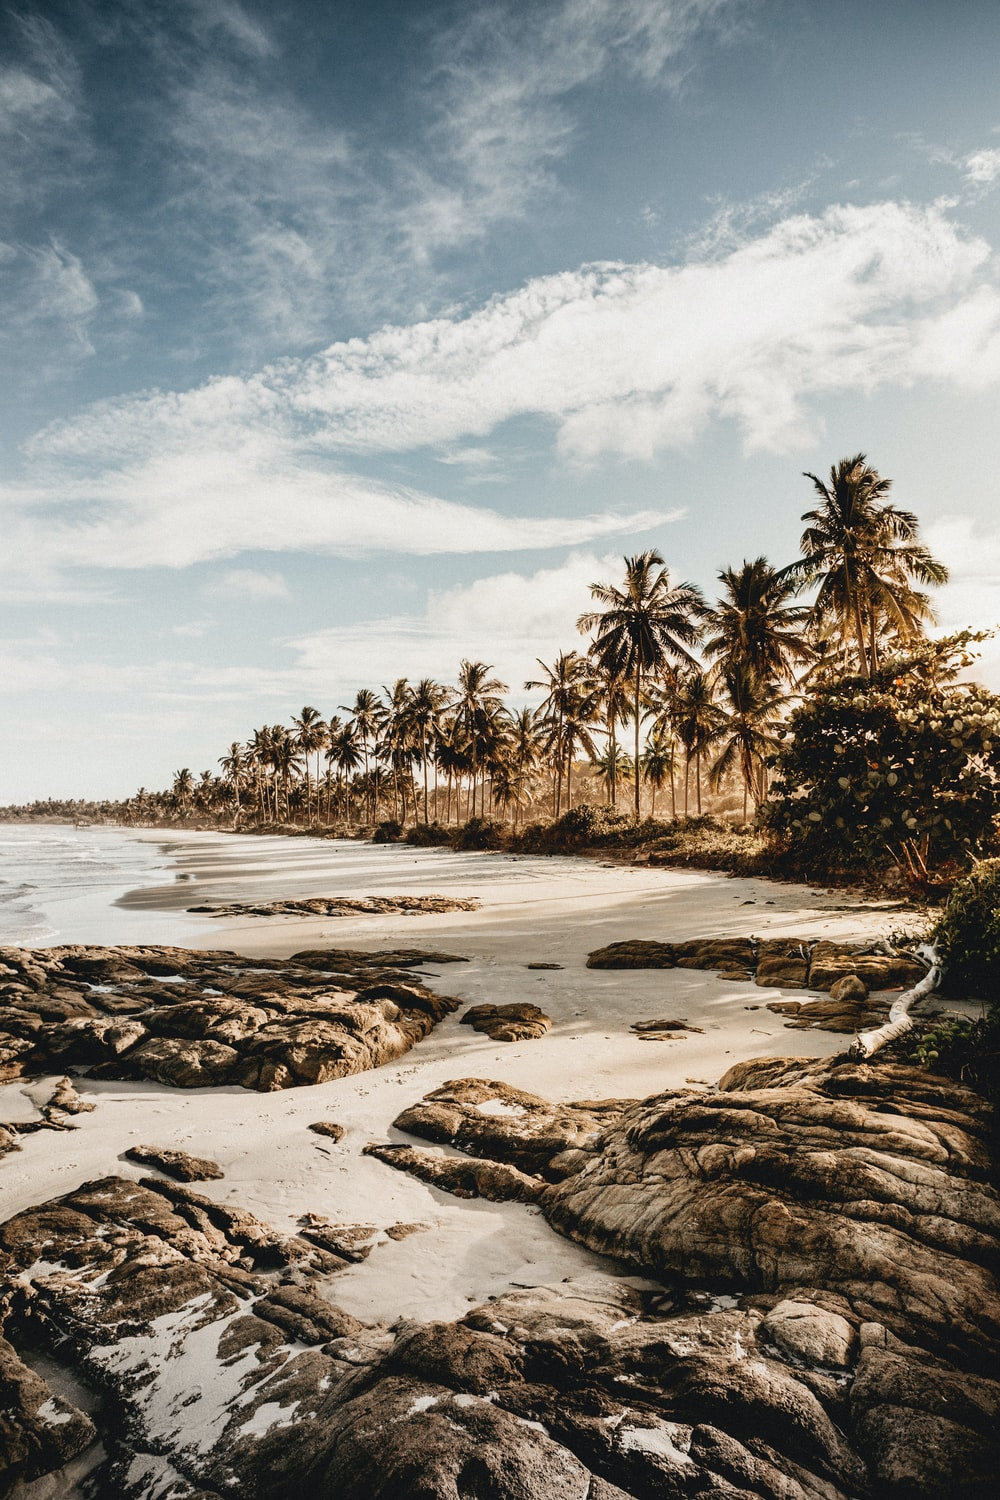 green palm trees on beach shore under white clouds and blue sky during daytime